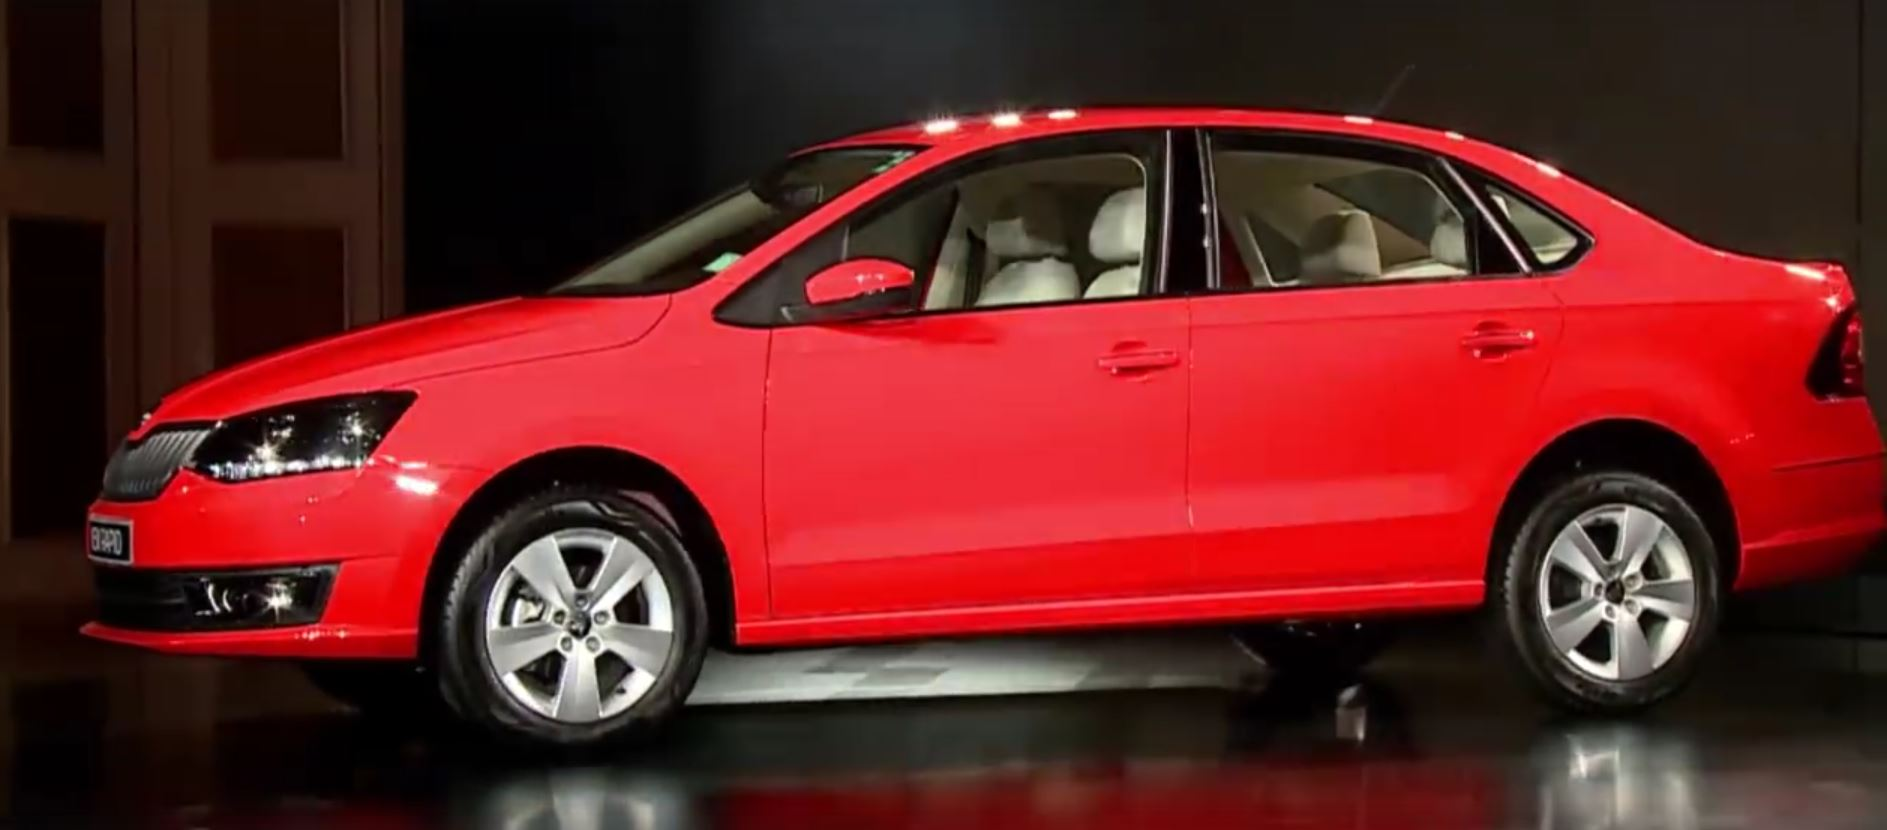 skoda rapid facelift gets fabia headlights 1 5 tdi in. Black Bedroom Furniture Sets. Home Design Ideas